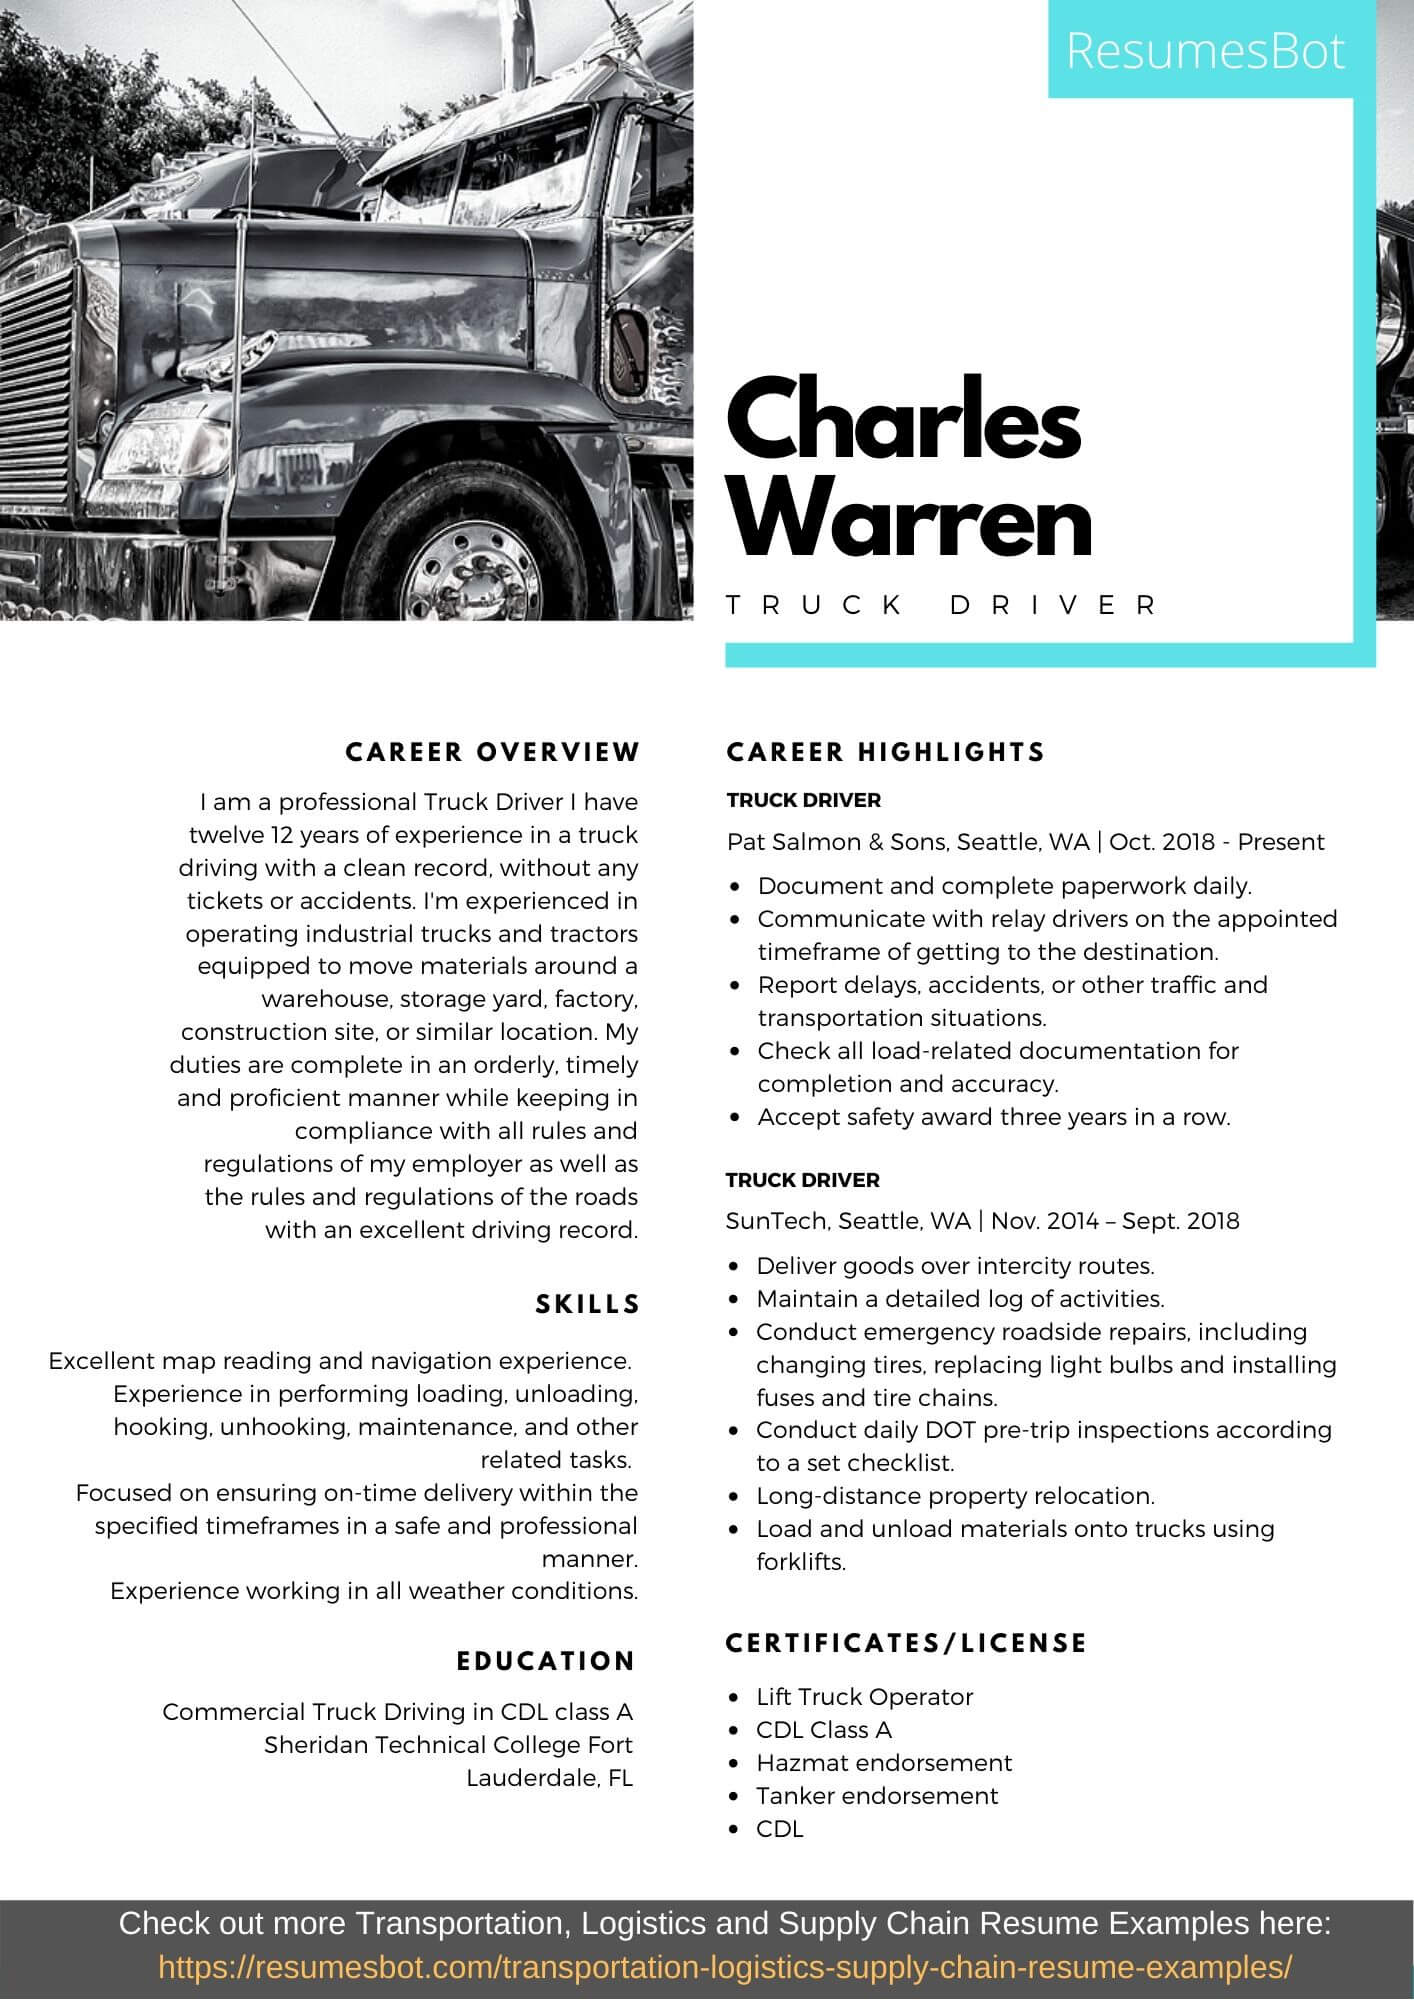 Truck Driver Resume Samples And Tips Pdf Doc Resumes Bot